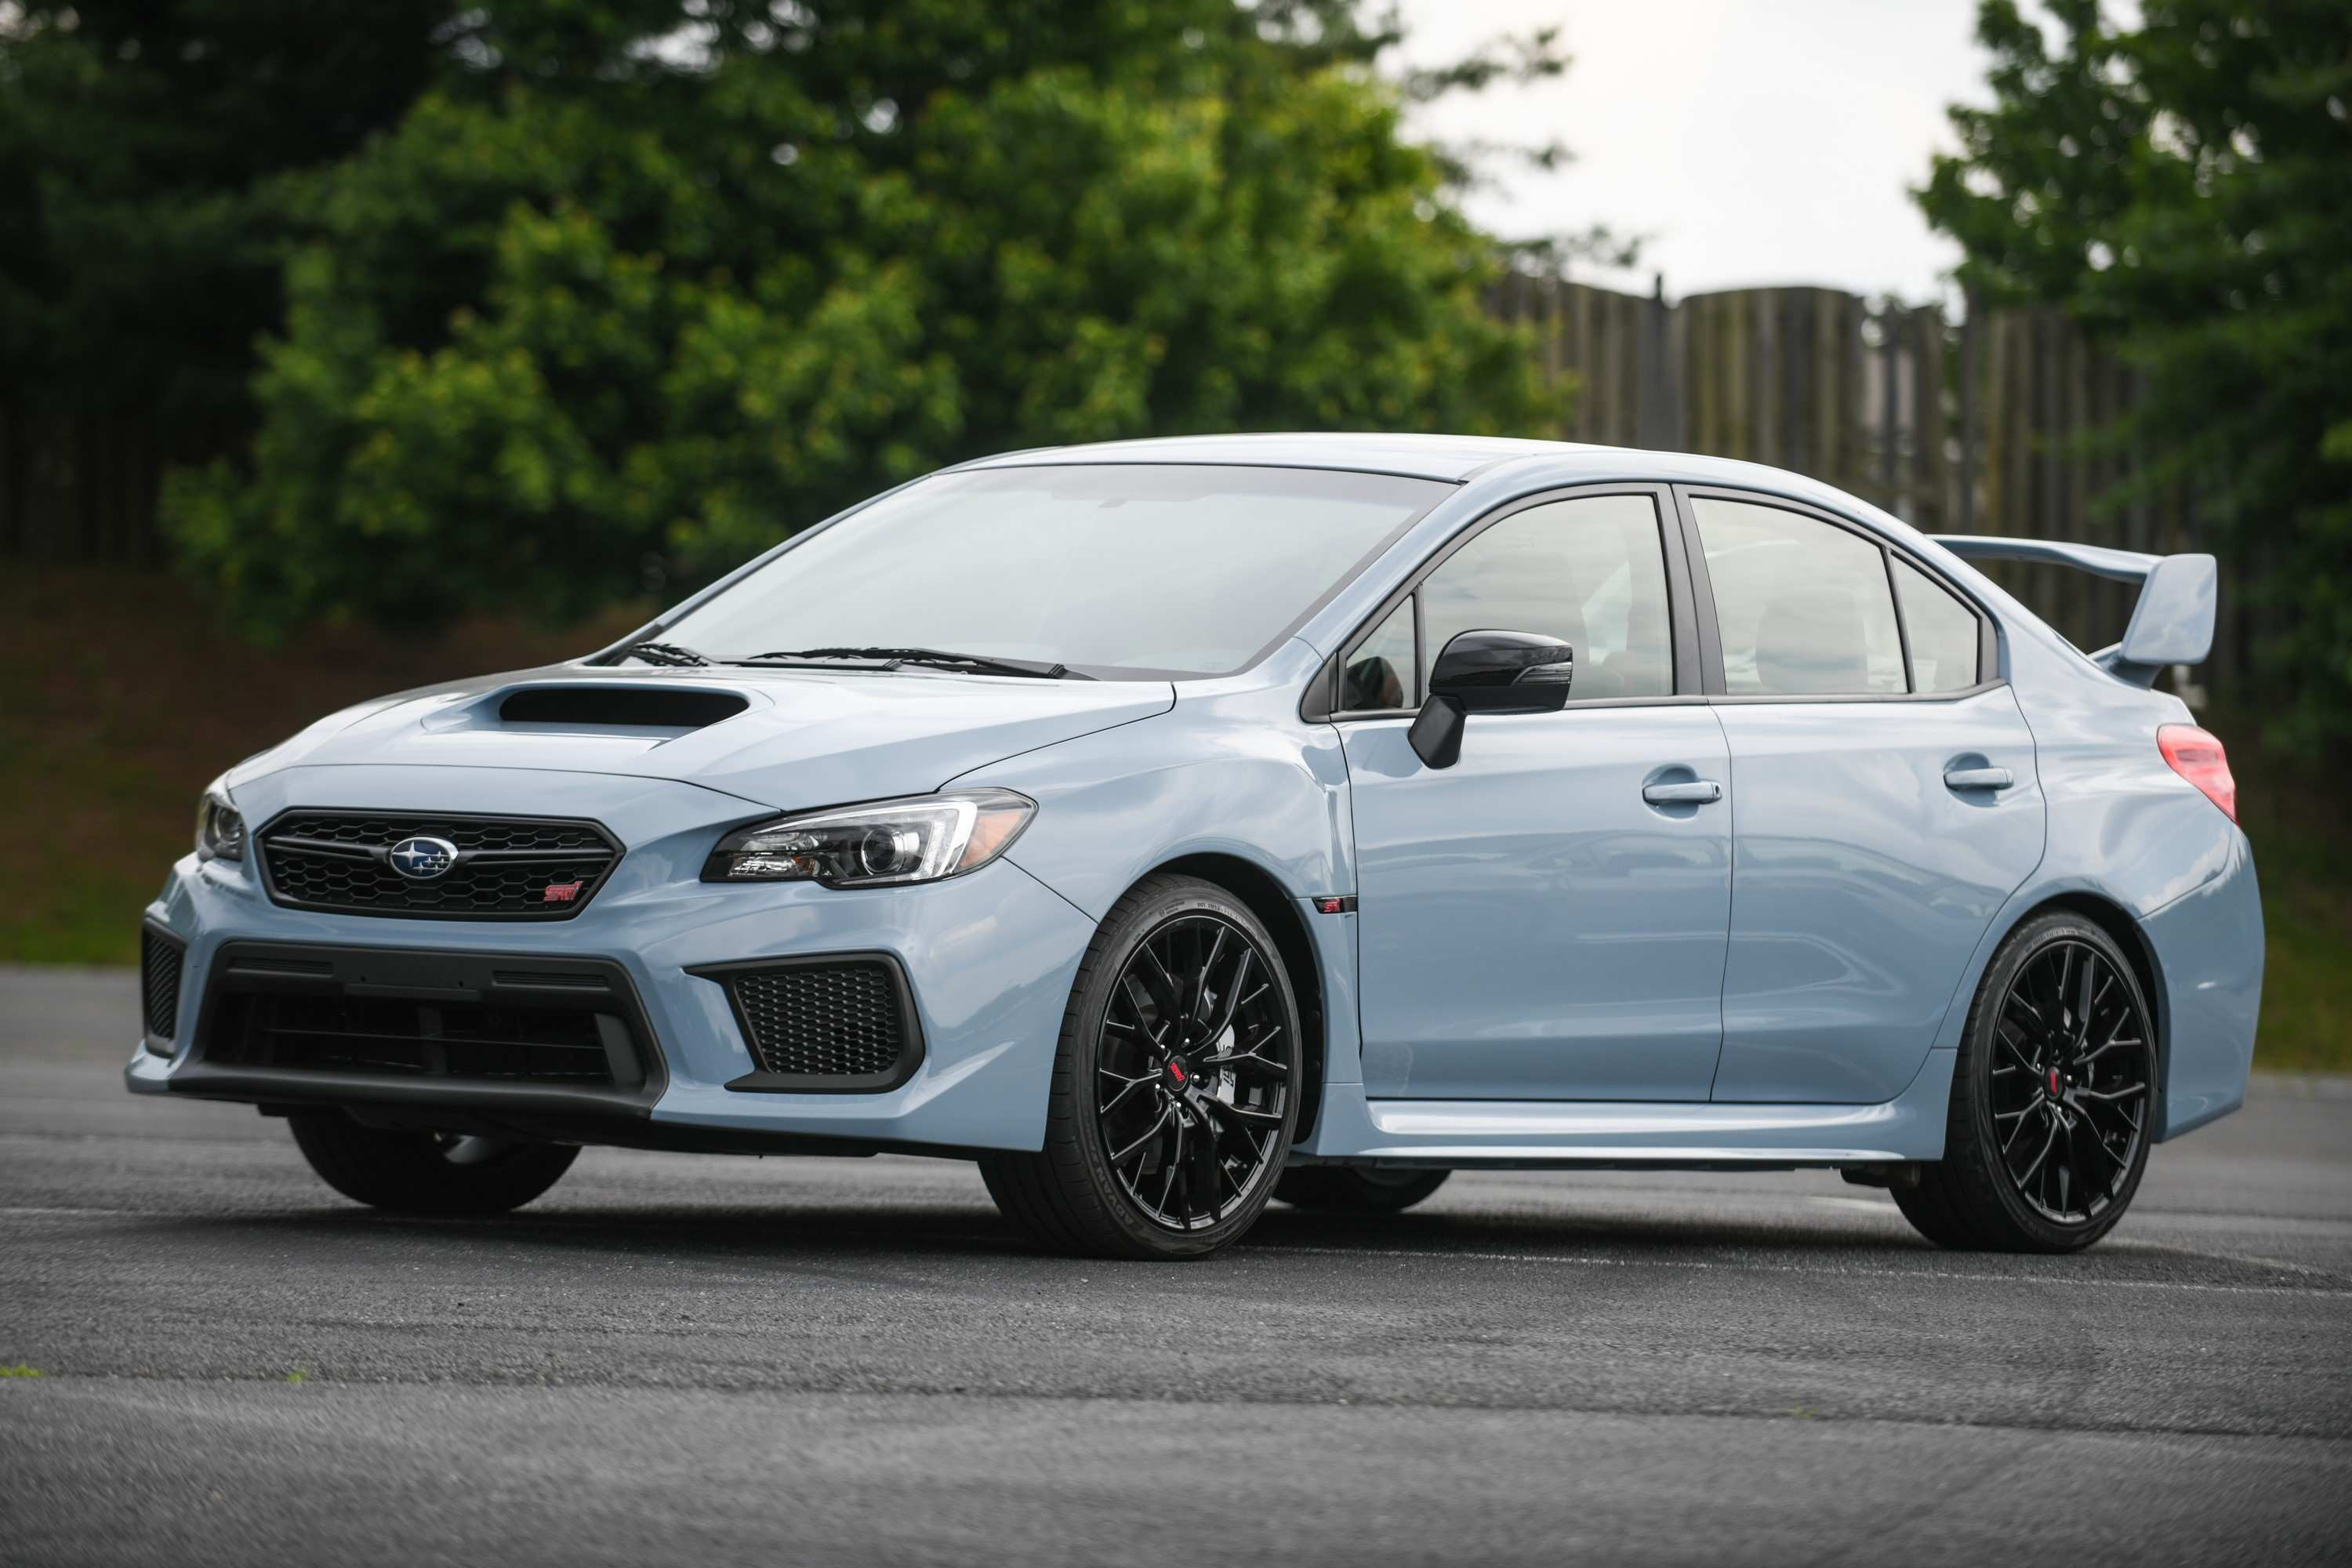 84 New 2019 Subaru Sti Pictures with 2019 Subaru Sti